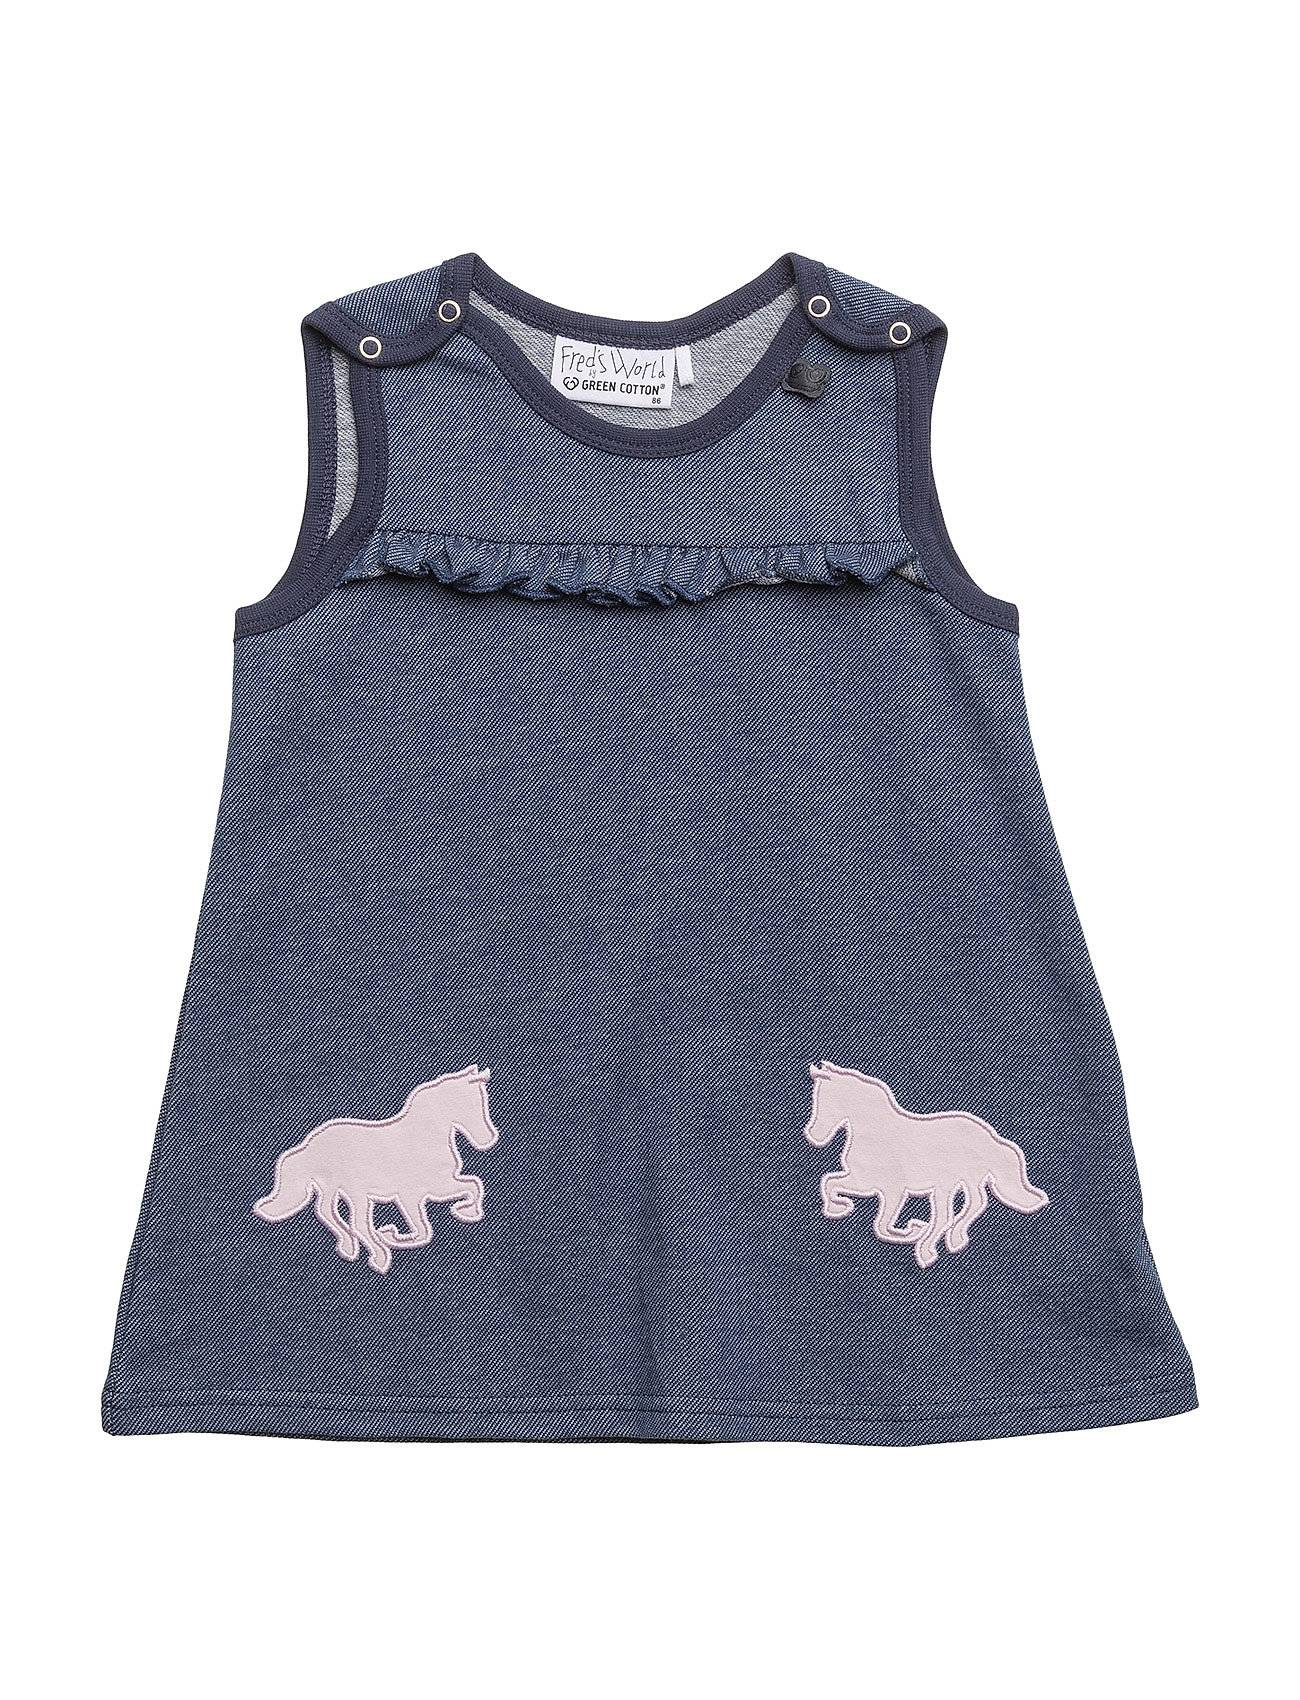 Freds World Horse Denim Dress